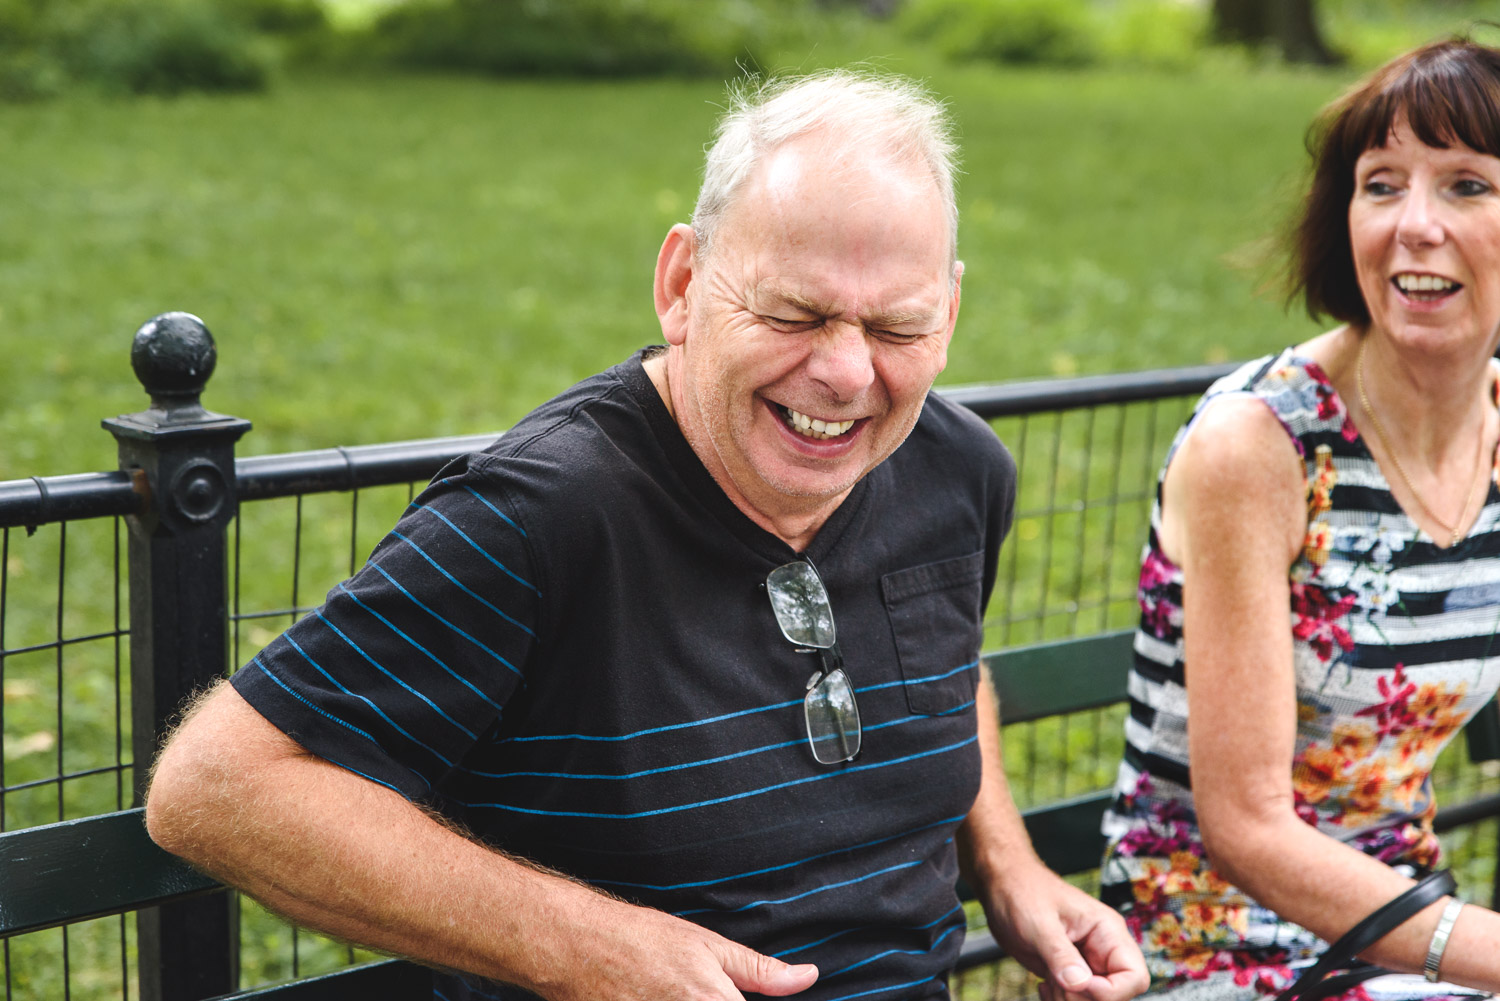 Francesca Russell Photography | New York City Vacation Photographer | Dad laughing